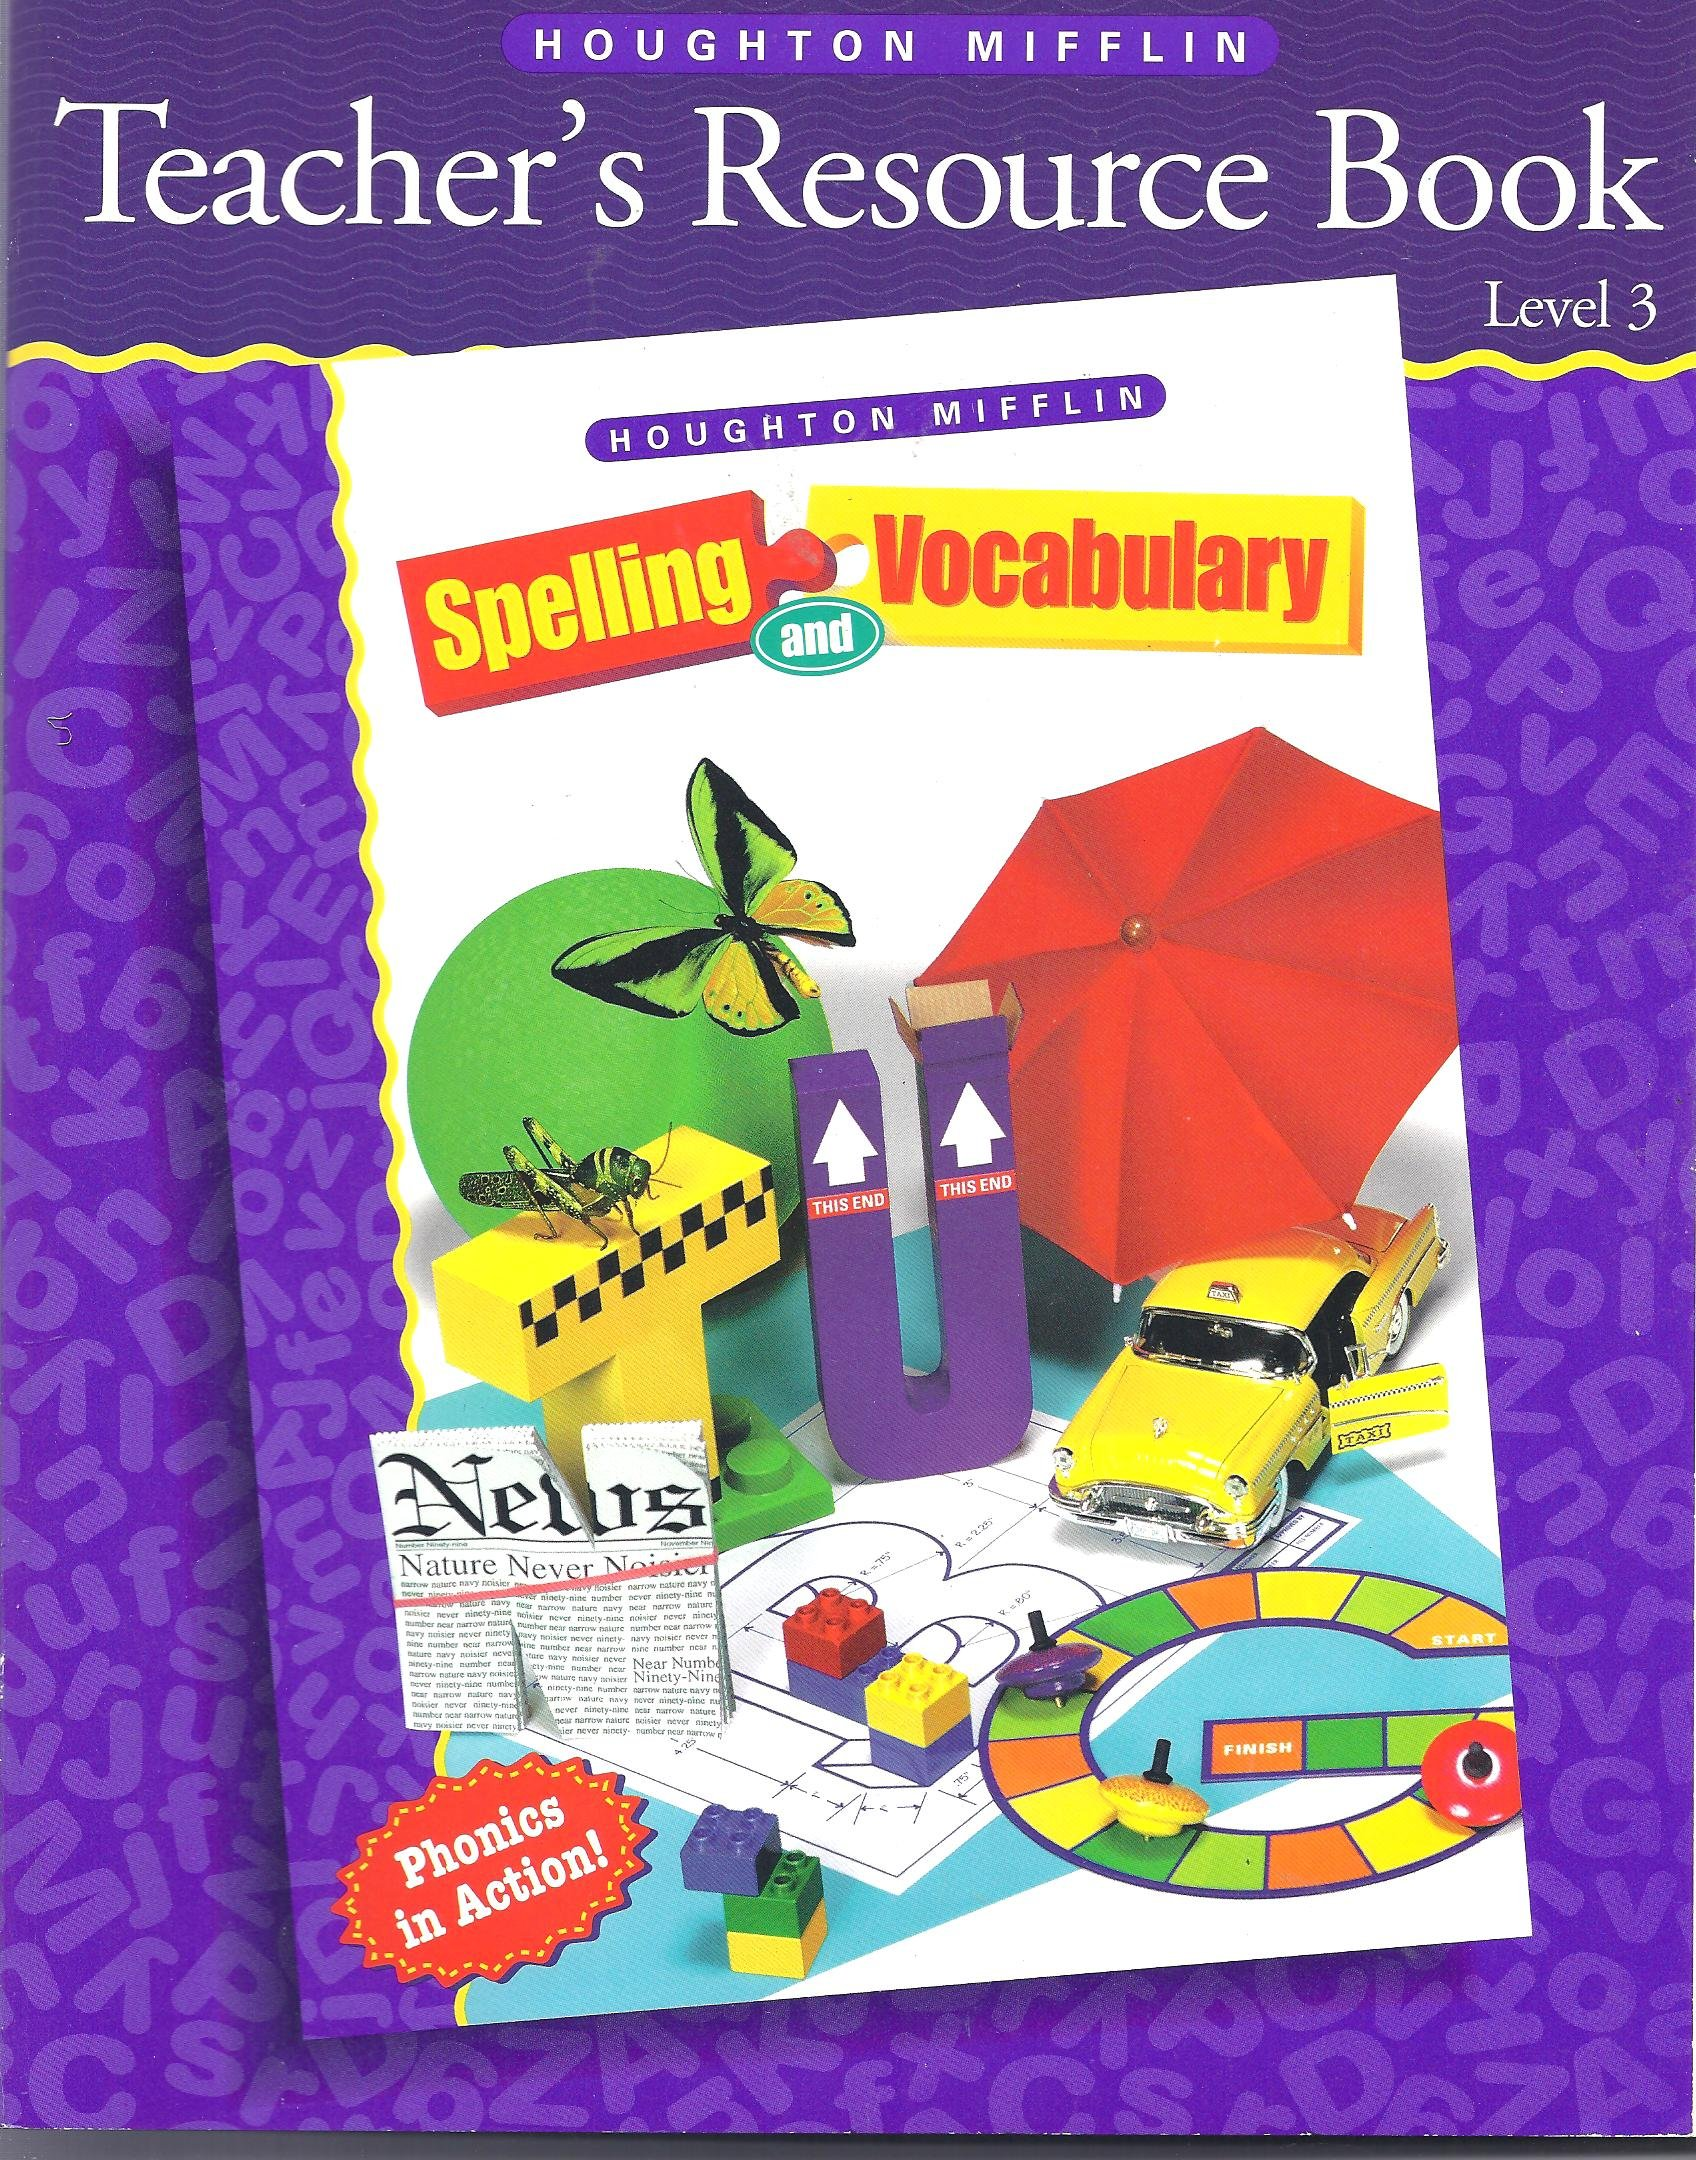 Teacher's Resource Book, Level 3 (Houghton Mifflin Spelling and  Vocabulary): Desconocido: 9780395855492: Amazon.com: Books